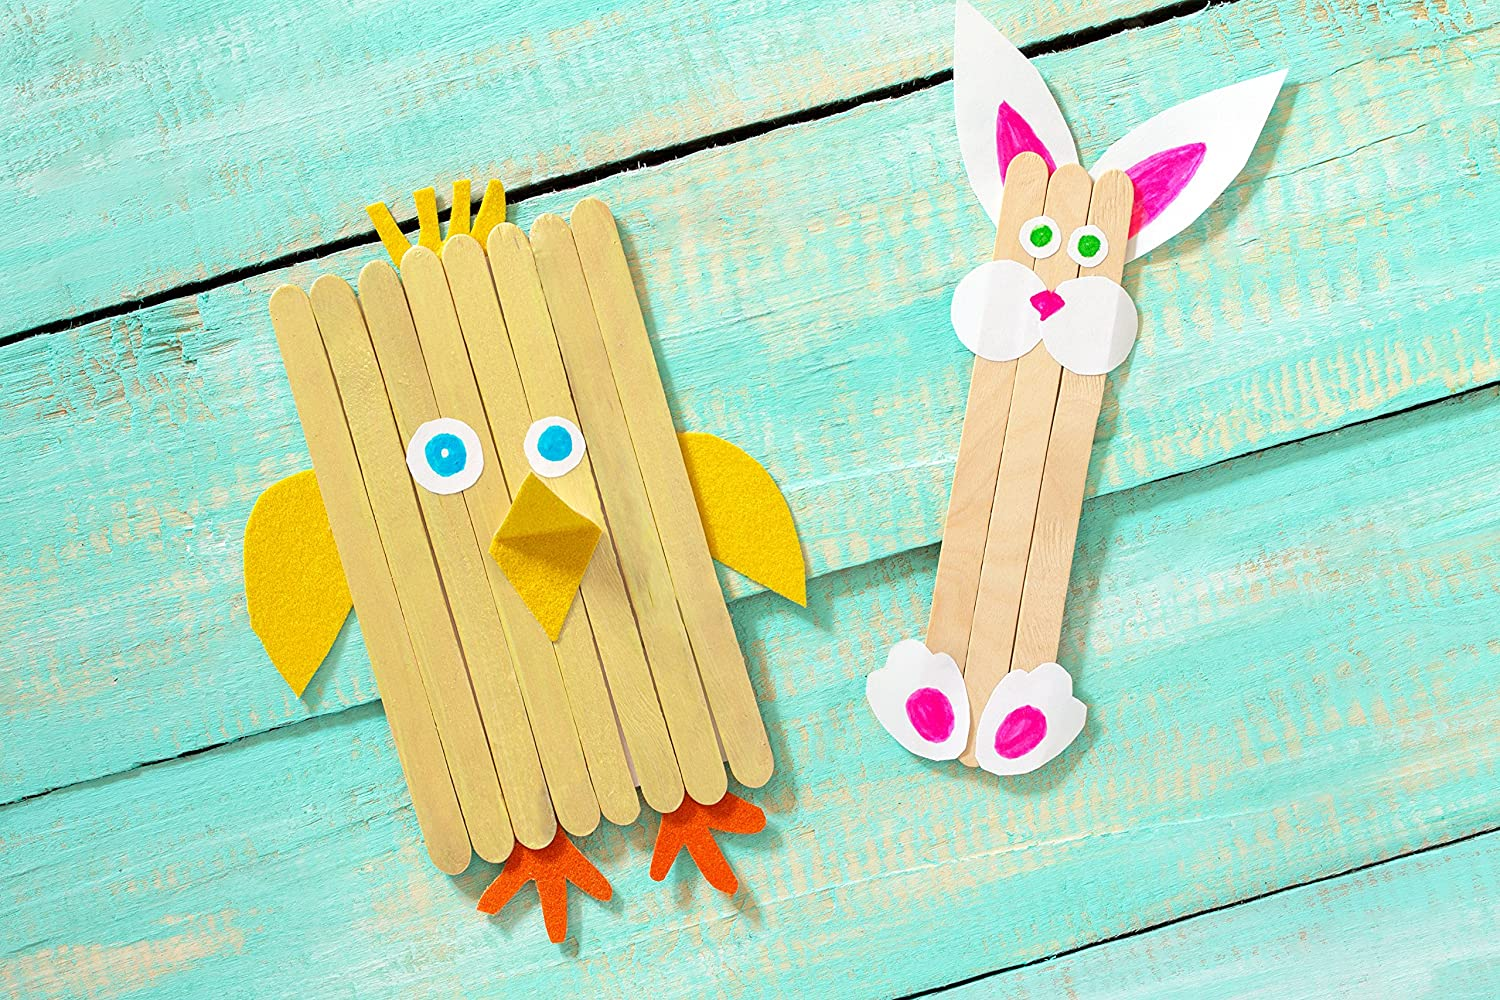 Artlicious Natural Wooden Food Grade Popsicle Craft Sticks 1000 Sticks